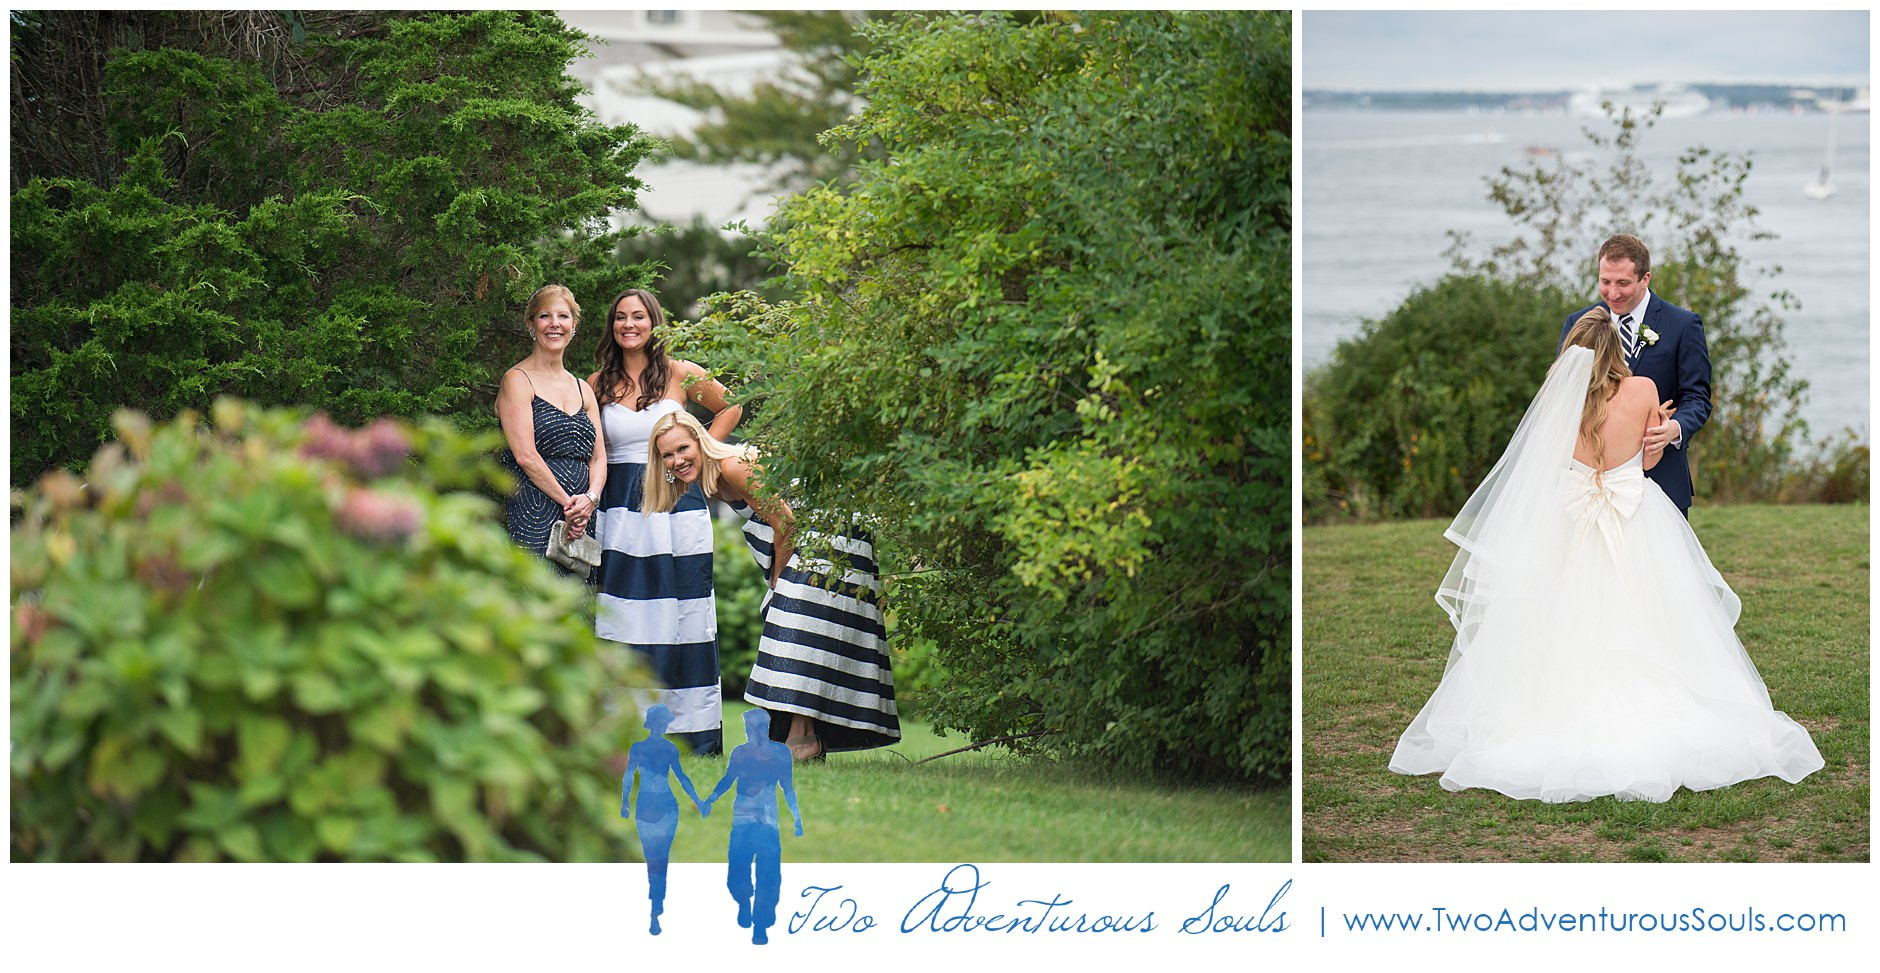 First Look by Rhode Island Wedding Photographers, Two Adventurous Souls 040919_0032.jpg